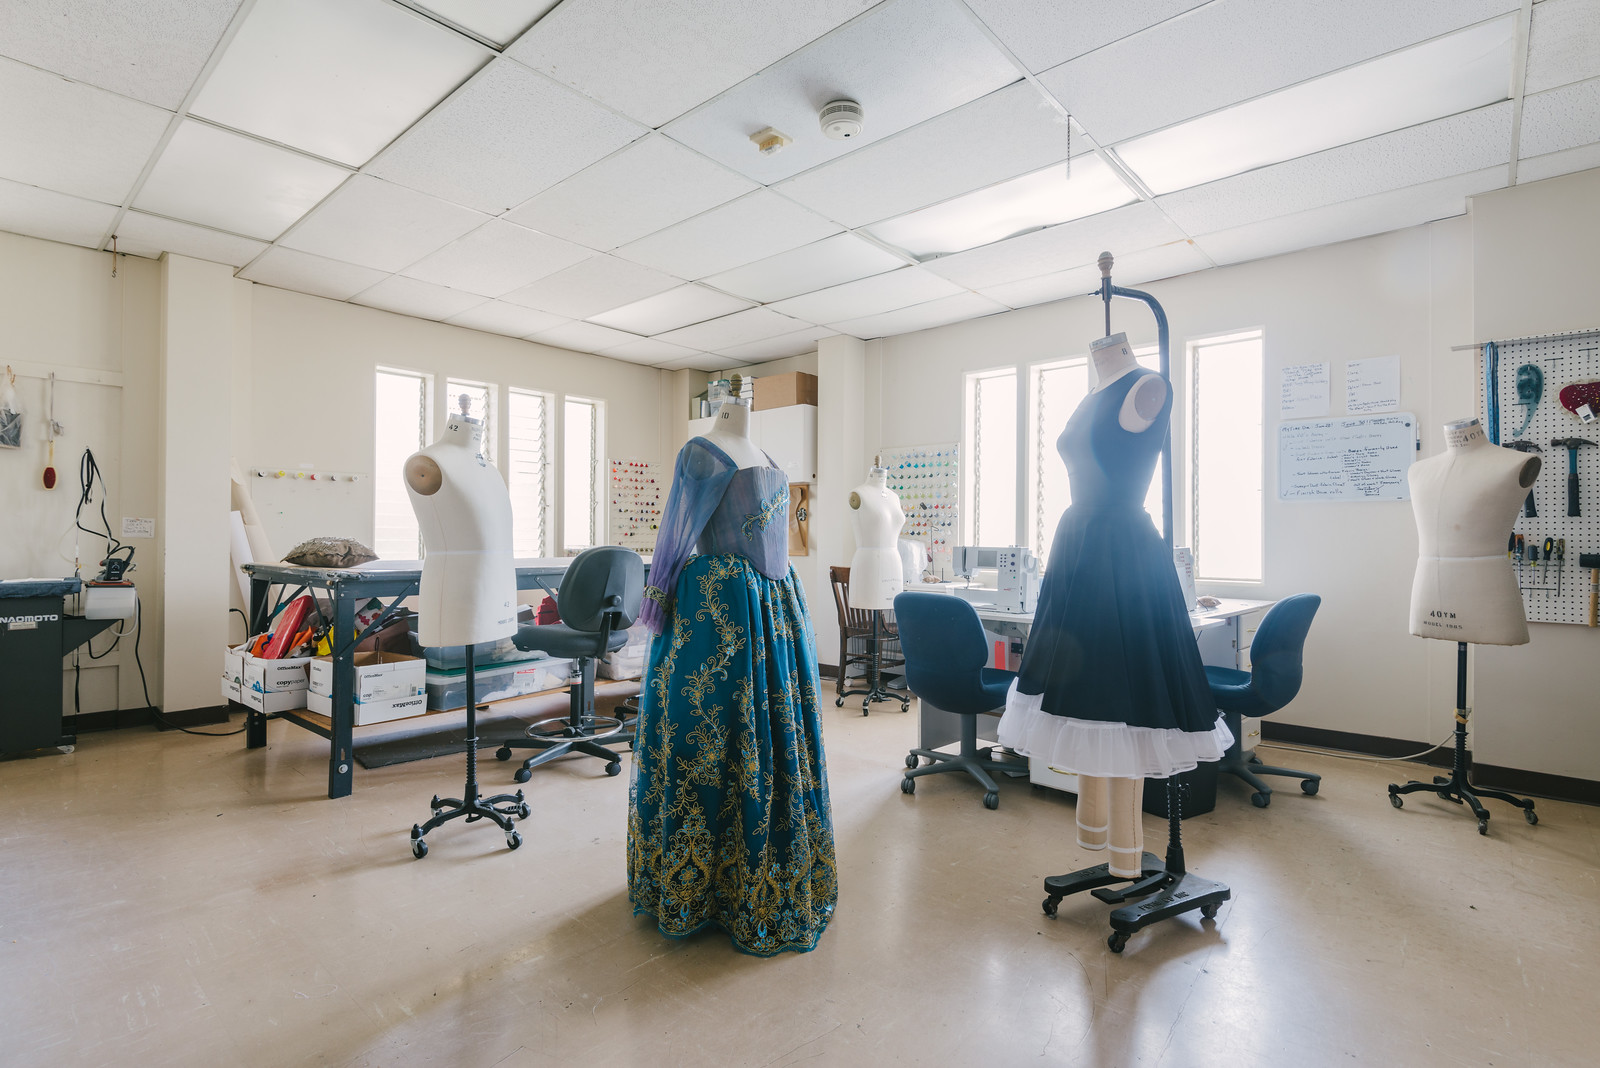 Summer Program - Sewing | LMU Pre-College Programs: Intro to Design for Stage and Screen